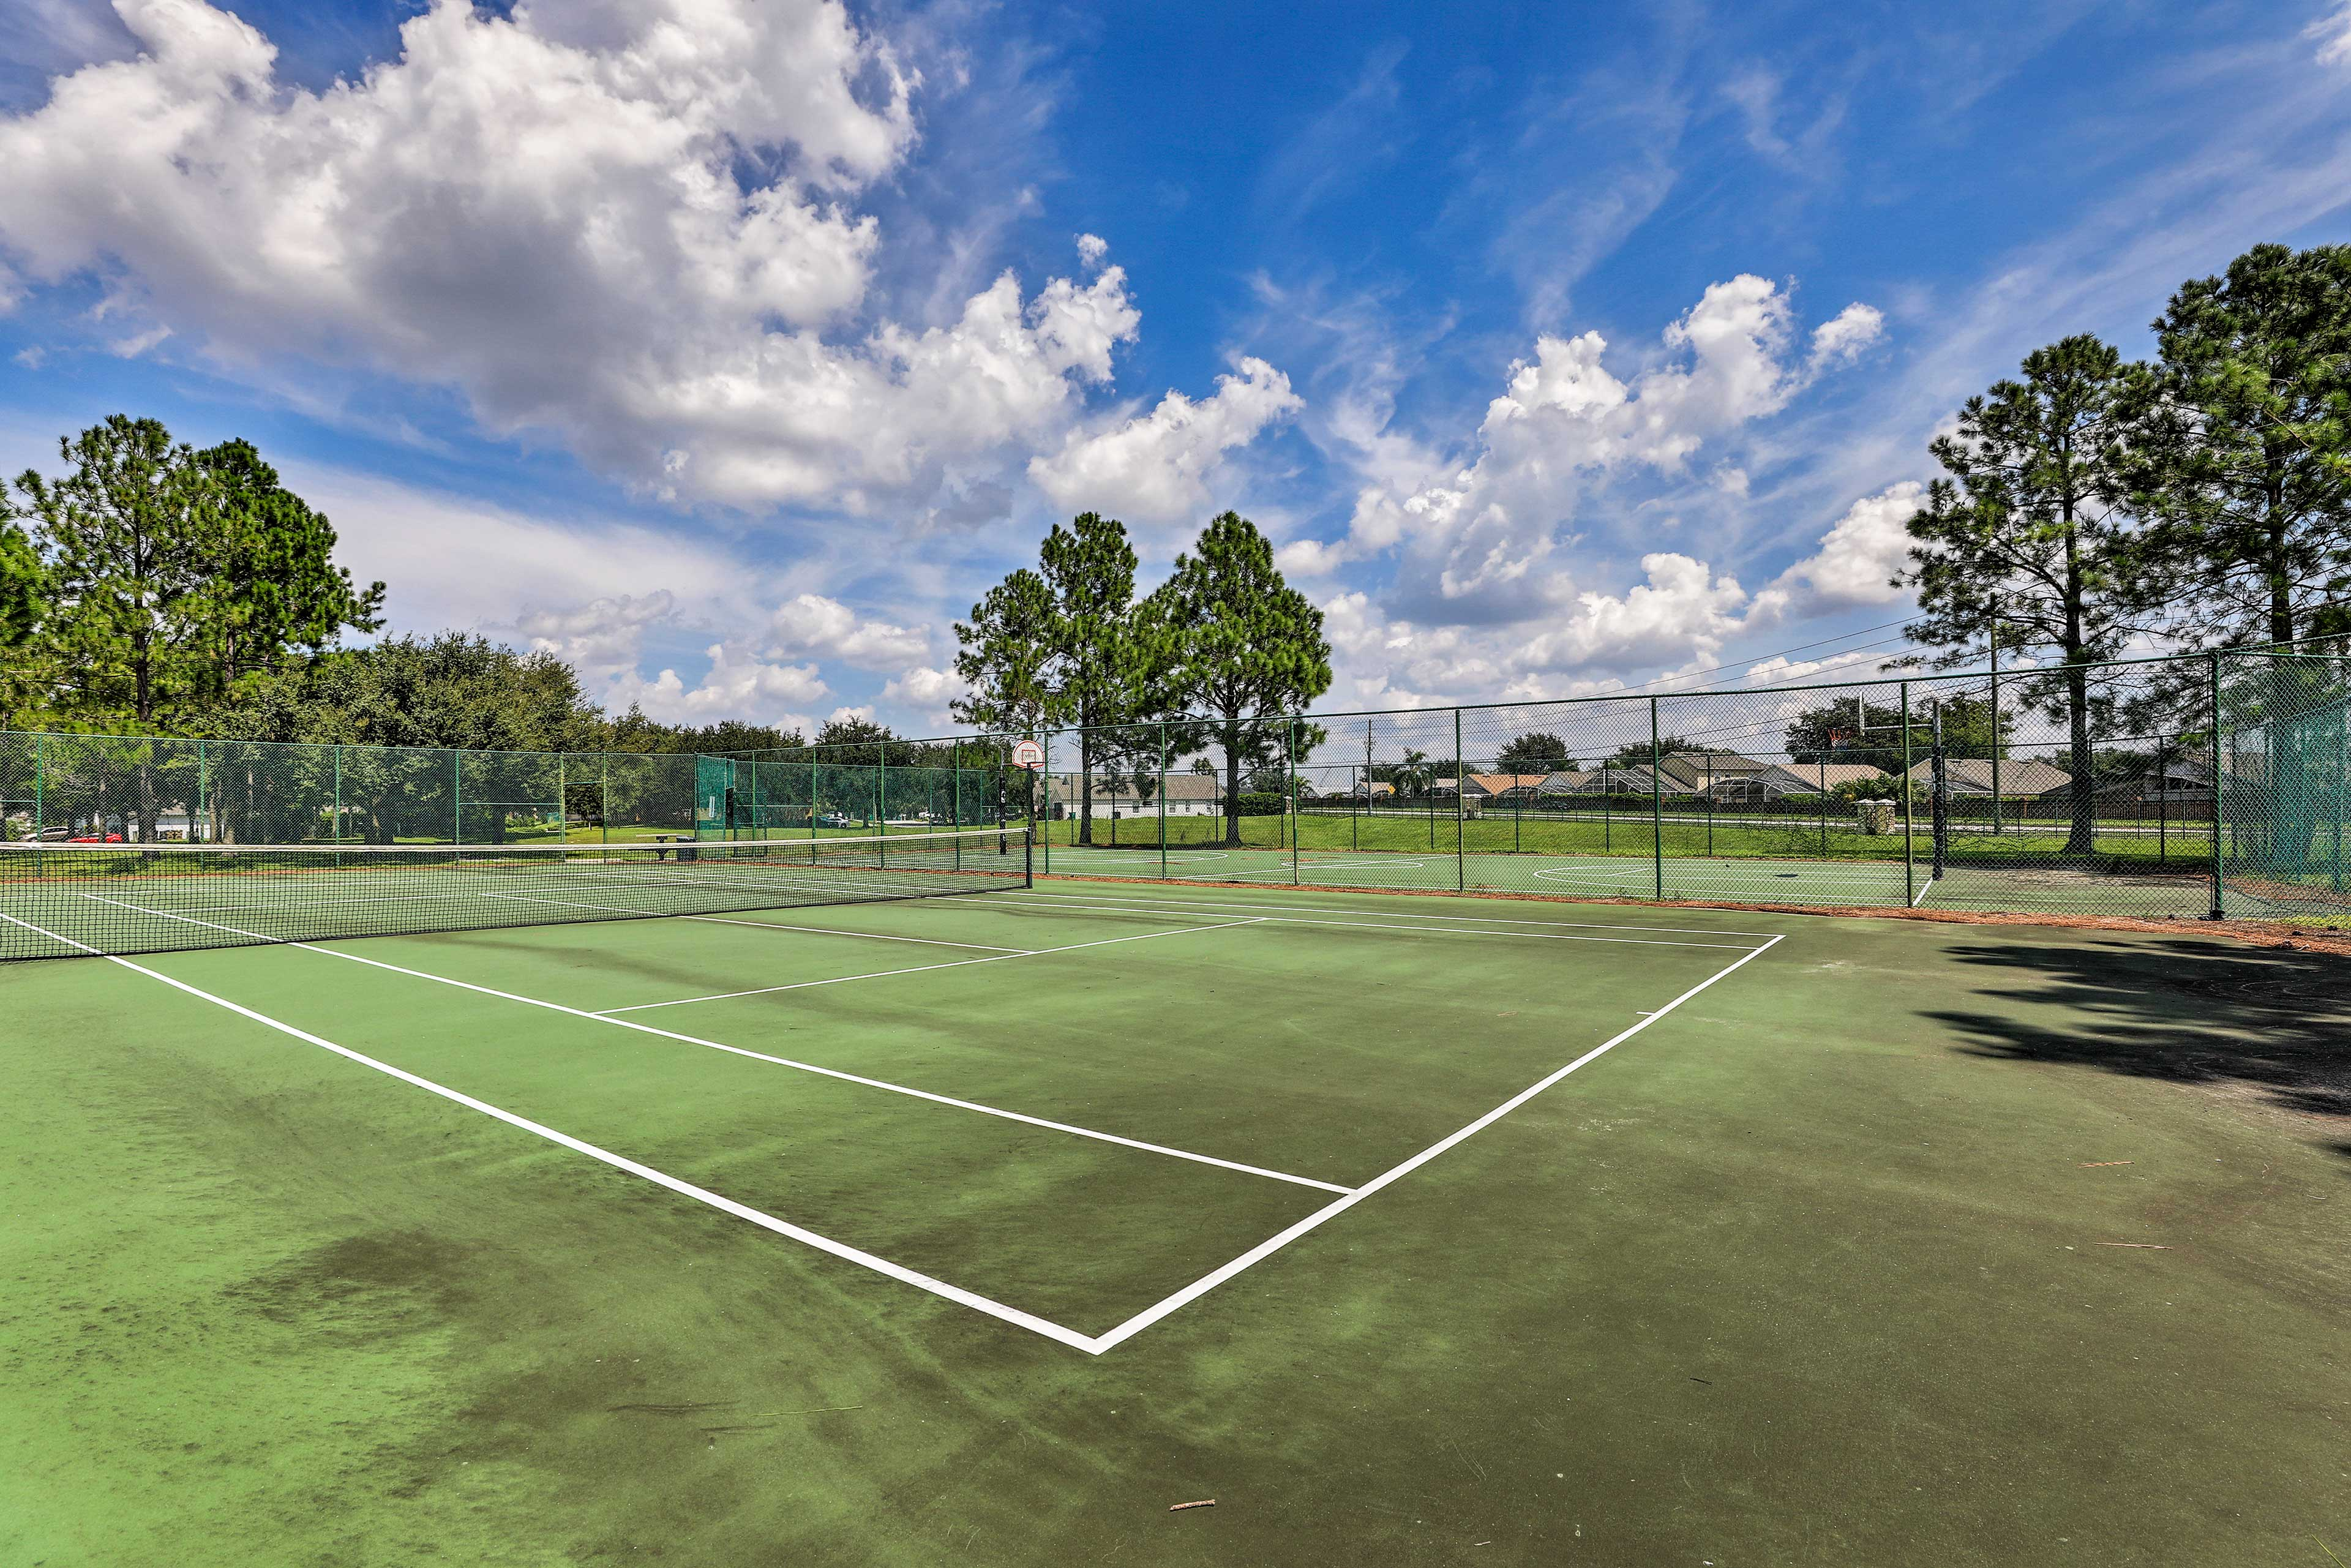 Challenge your family to a tennis match.